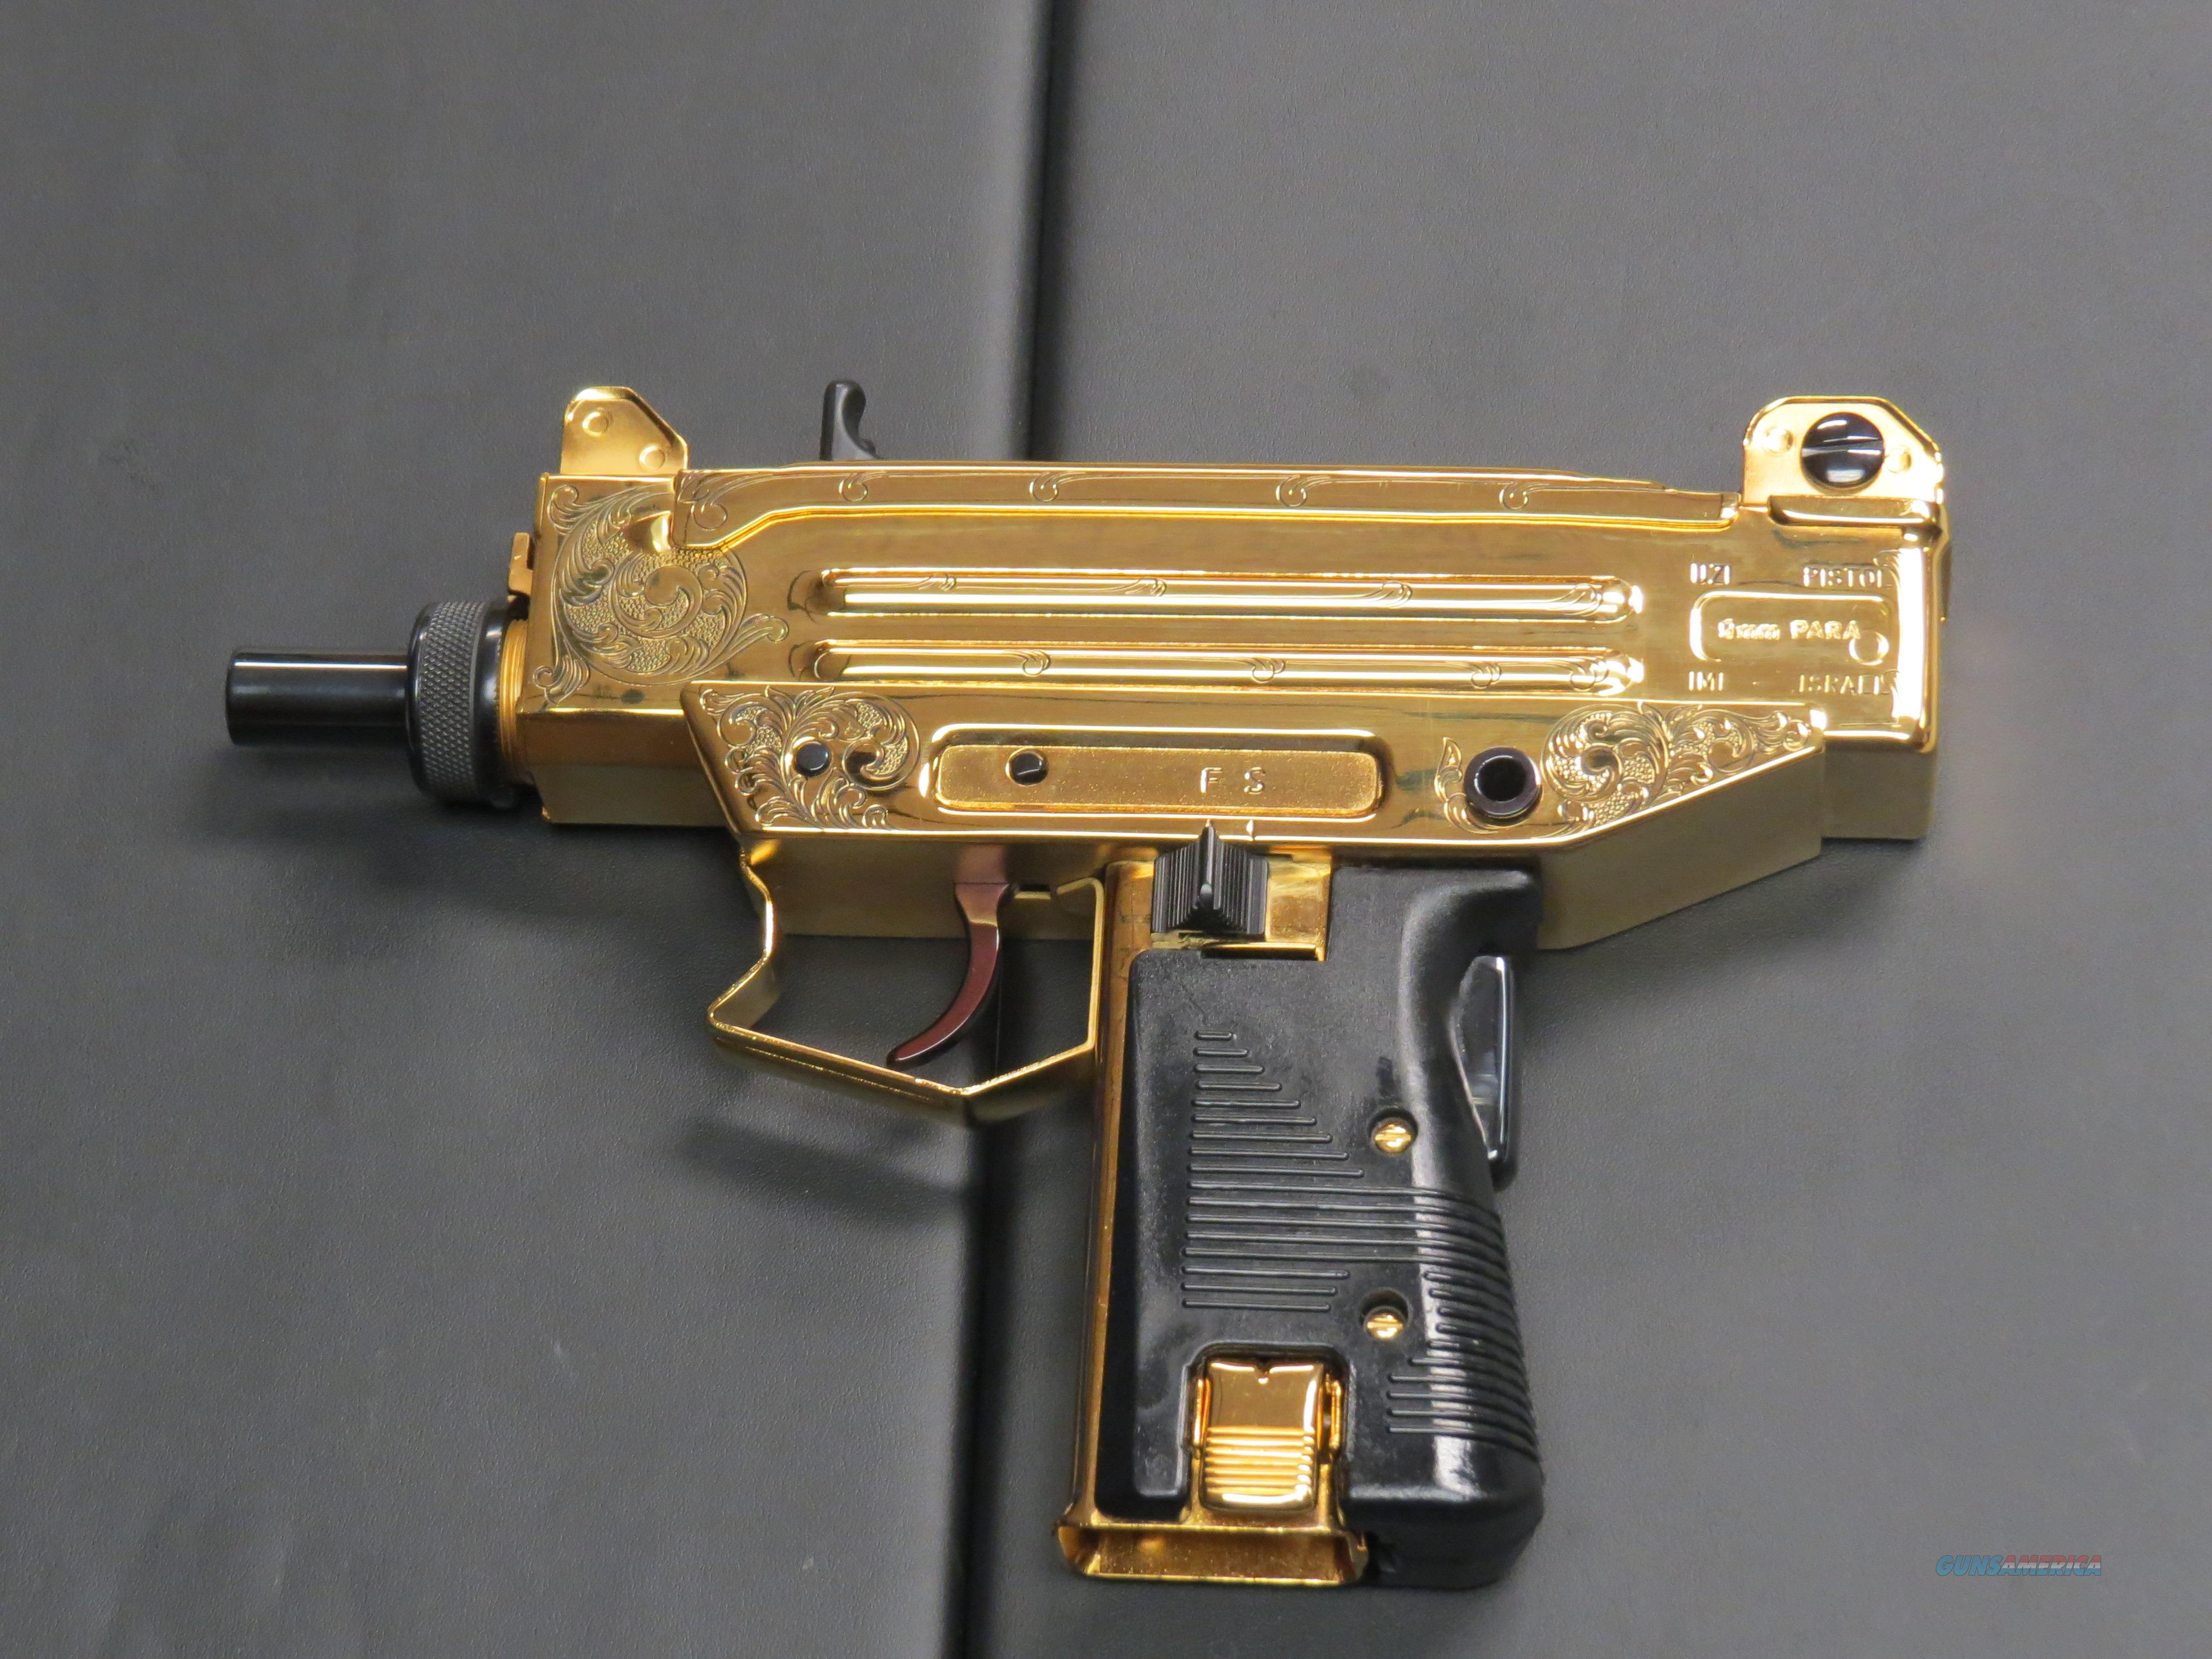 RARE IMI 9MM/ 41AE UZI PISTOL 24K GOLD PLATED AND HAND ENGRAVED 1 0F 100  EVER MADE! WOW!